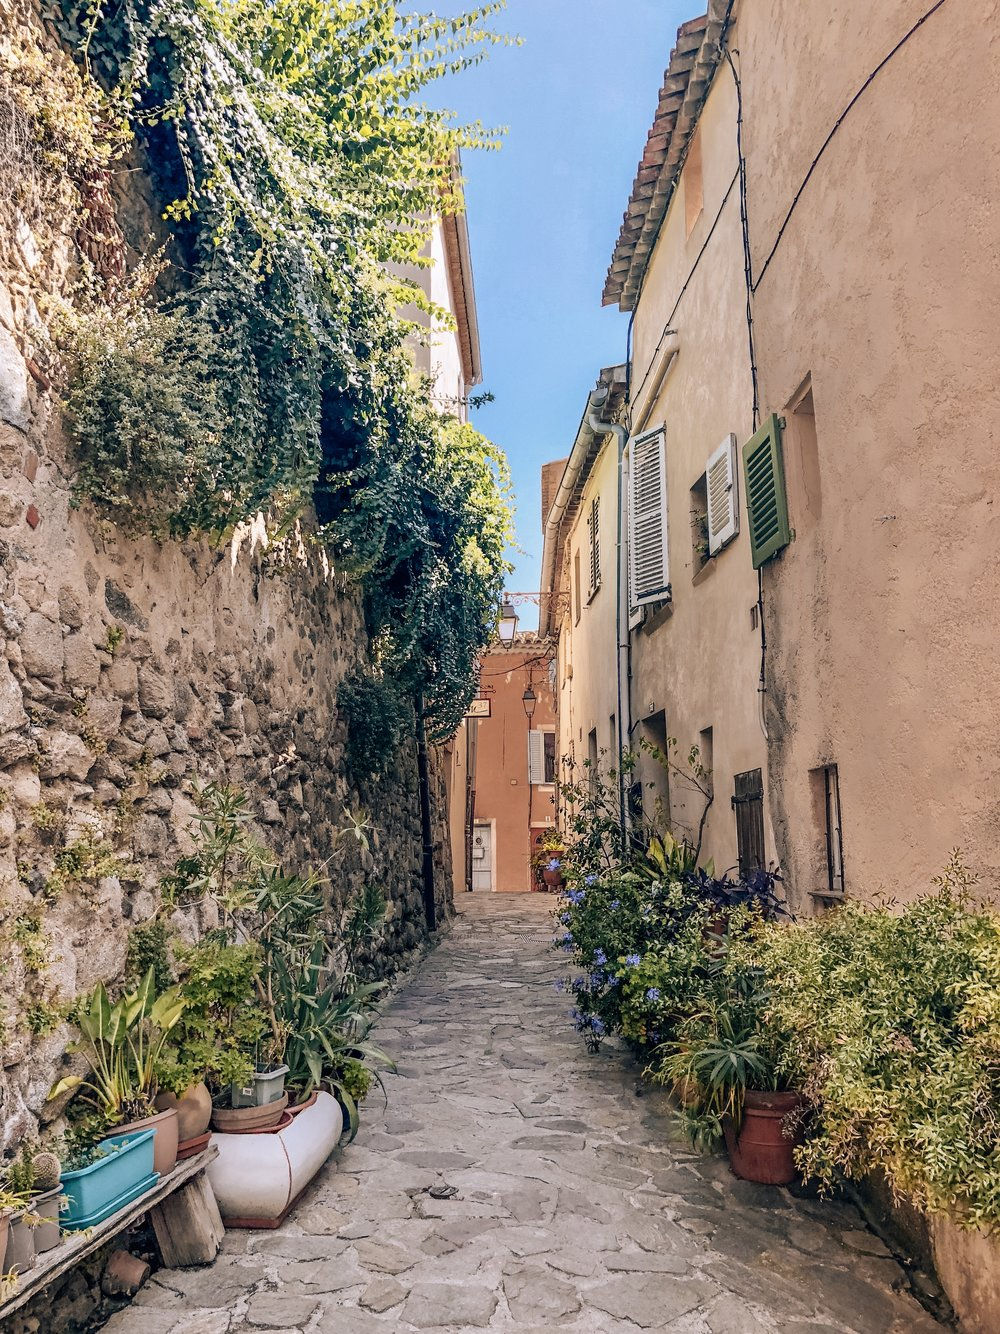 Exploring the streets of Grimaud, France